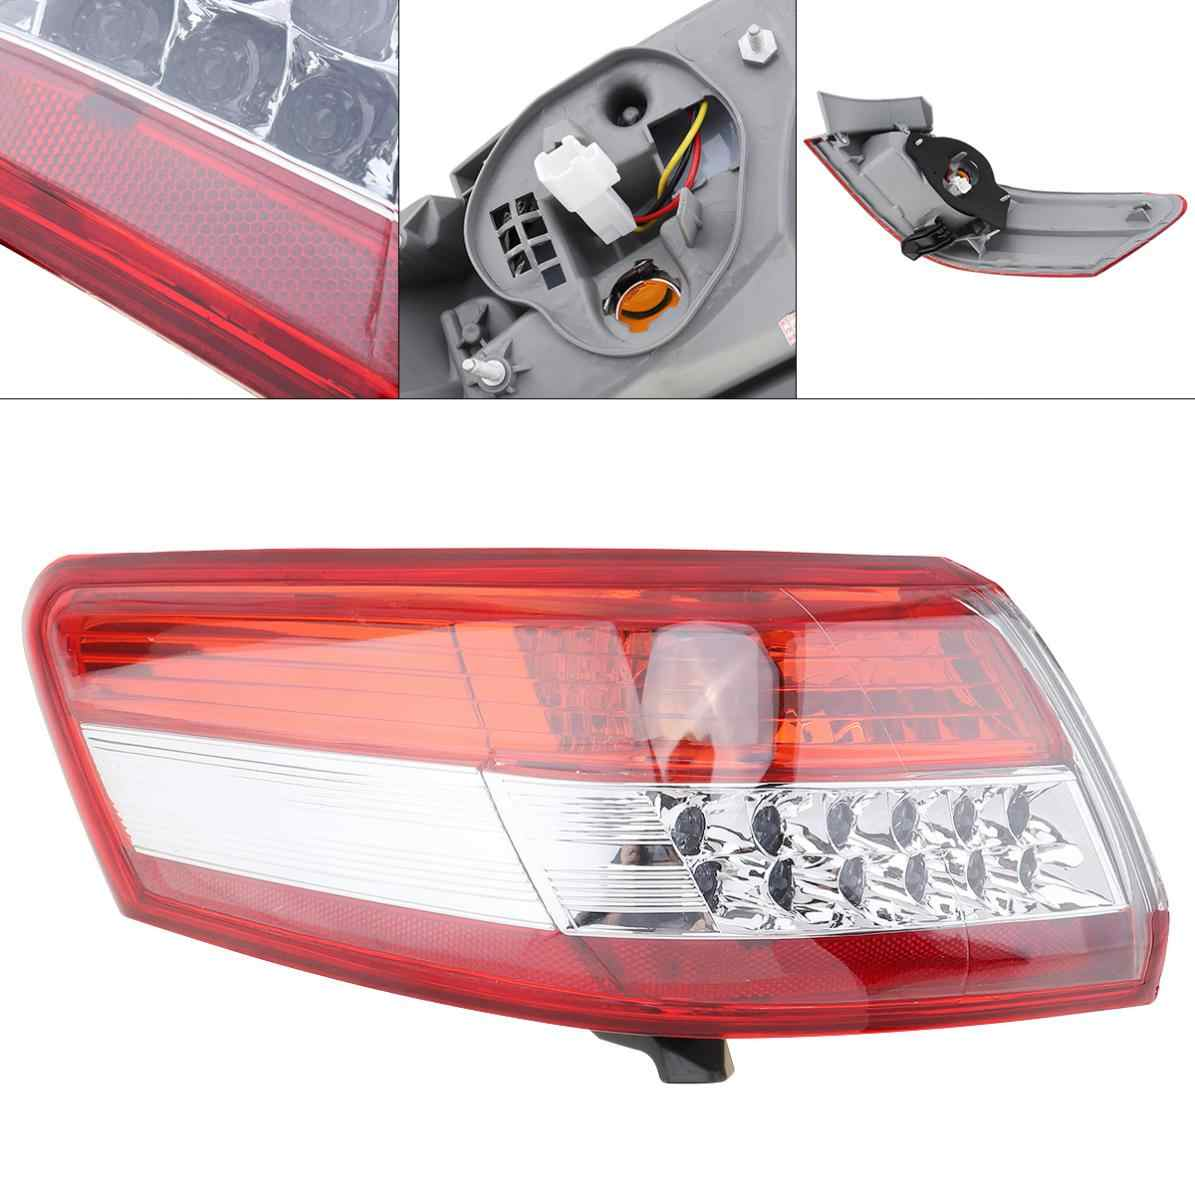 Waterproof Durable Car  Left Side LH Tail Light for Toyota Sport Edition ACV40 Toyota Camry 2010 2011